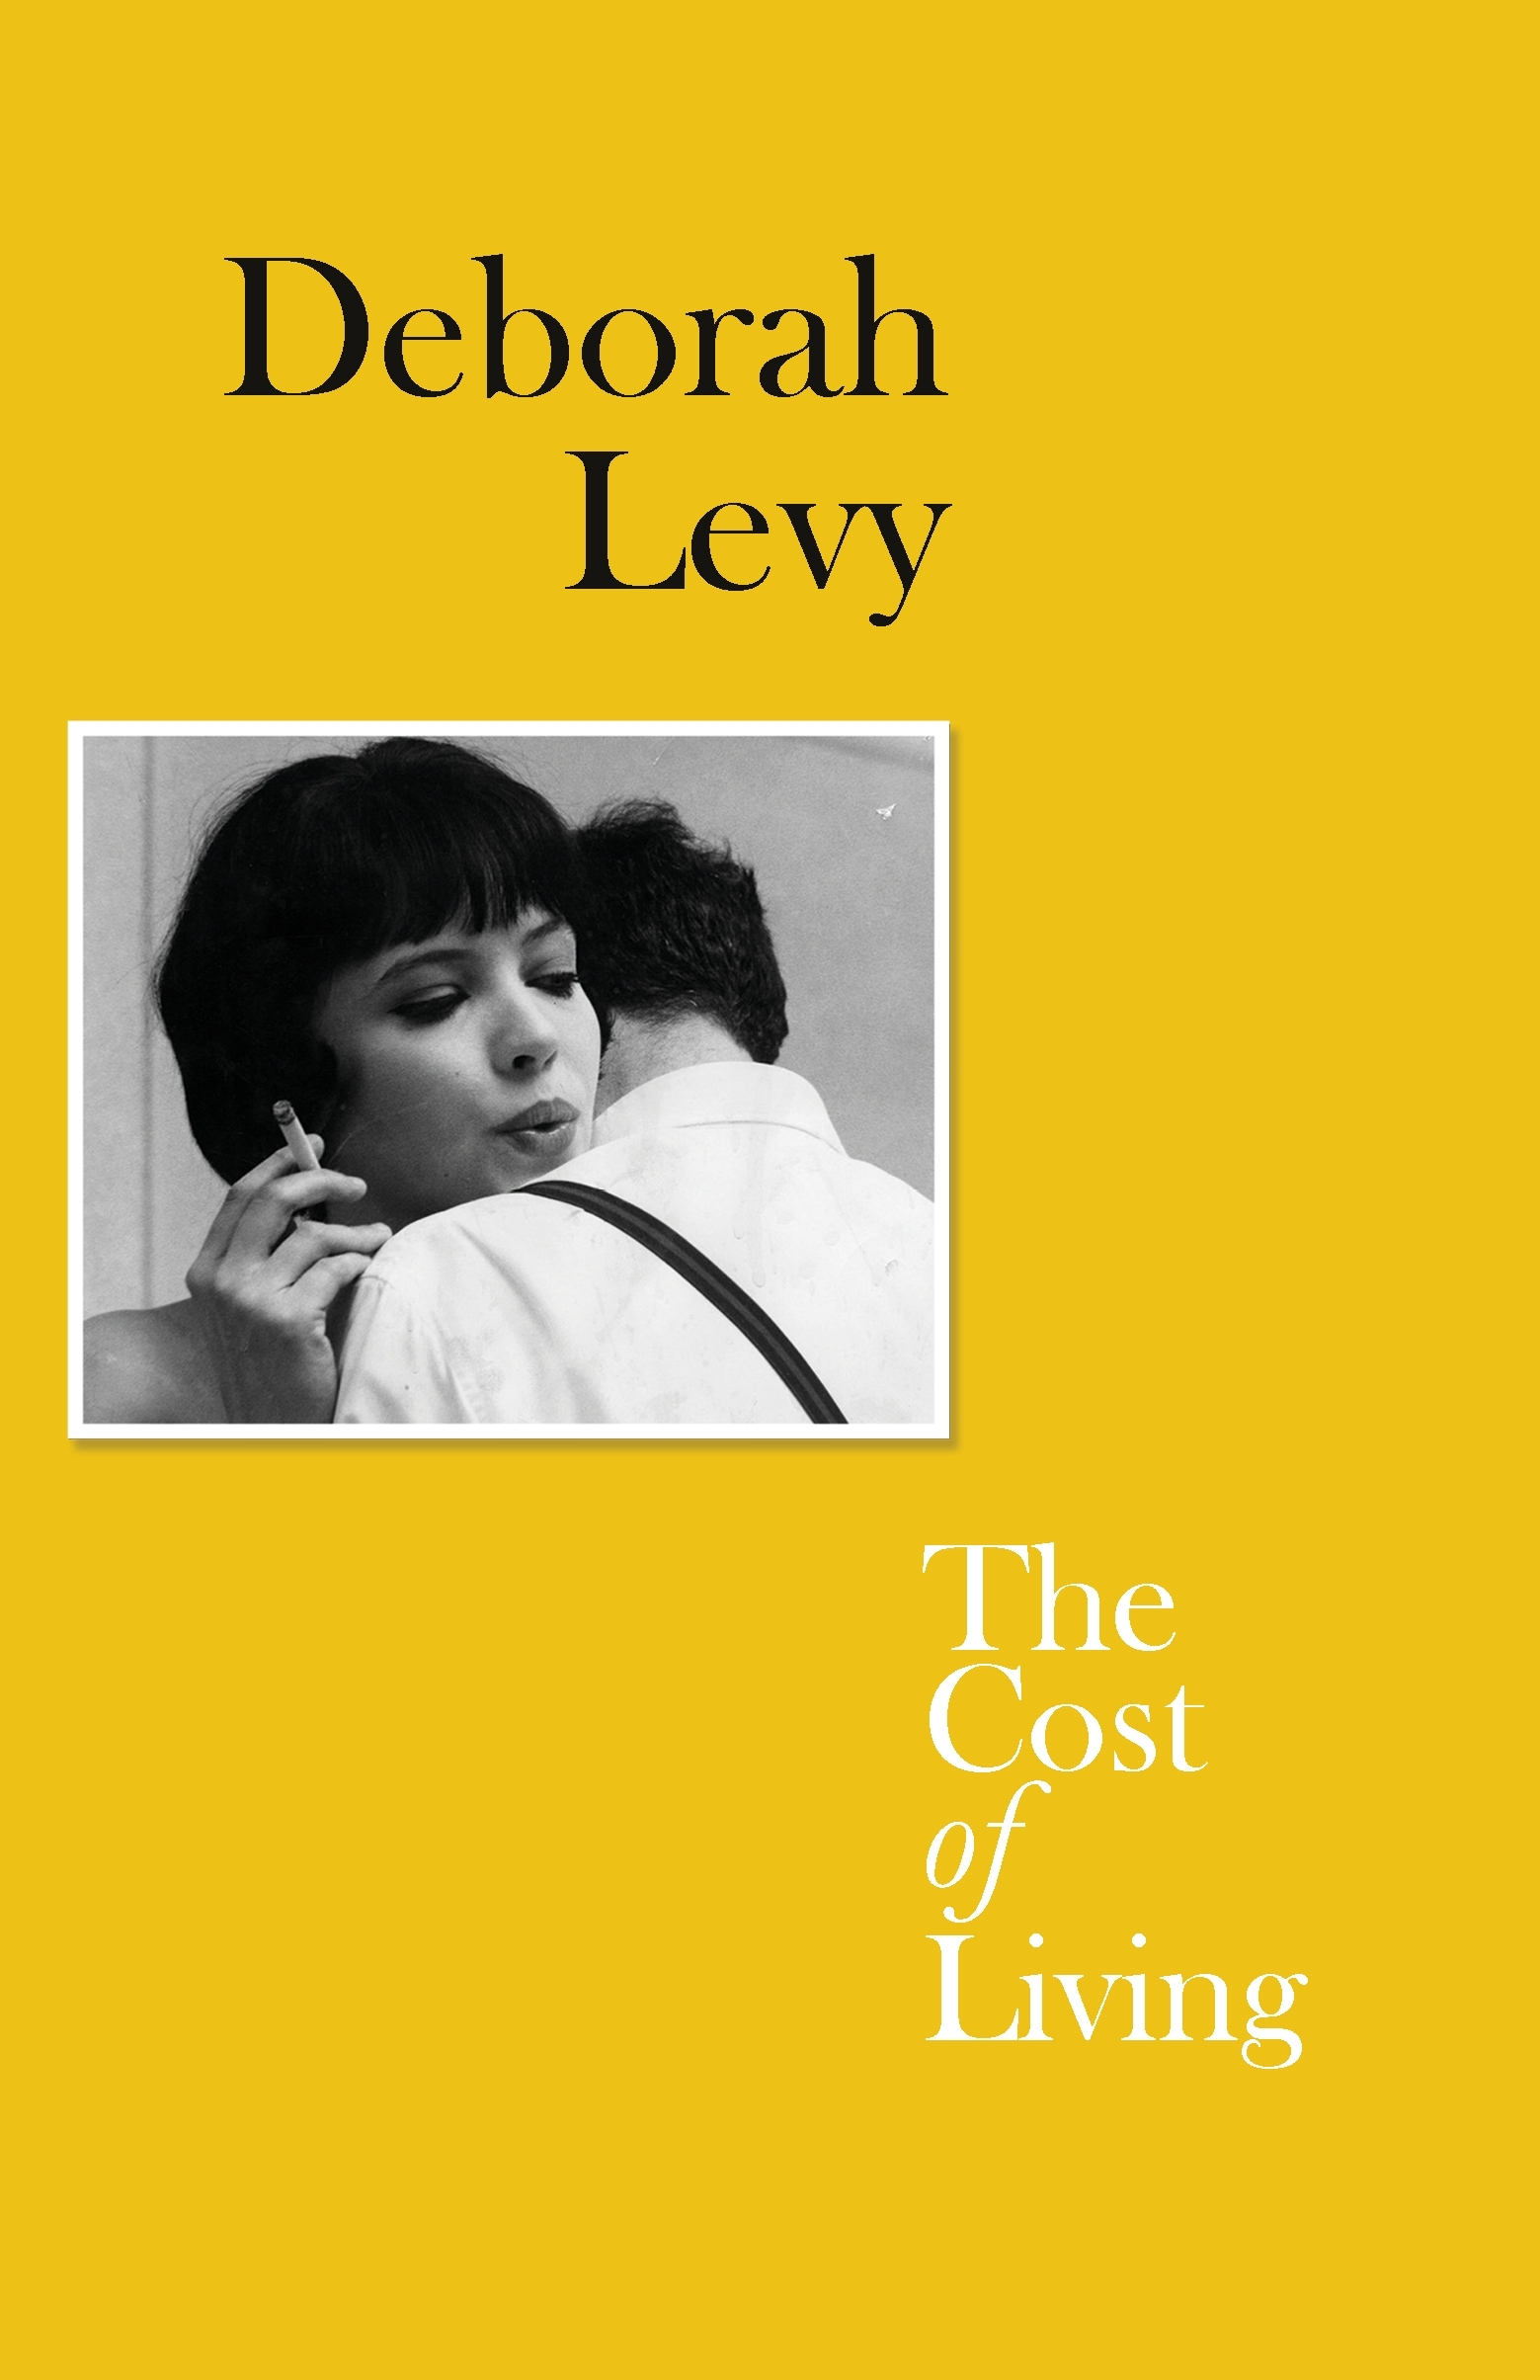 Book Recommendations: The Cost of Living by Deborah Levy